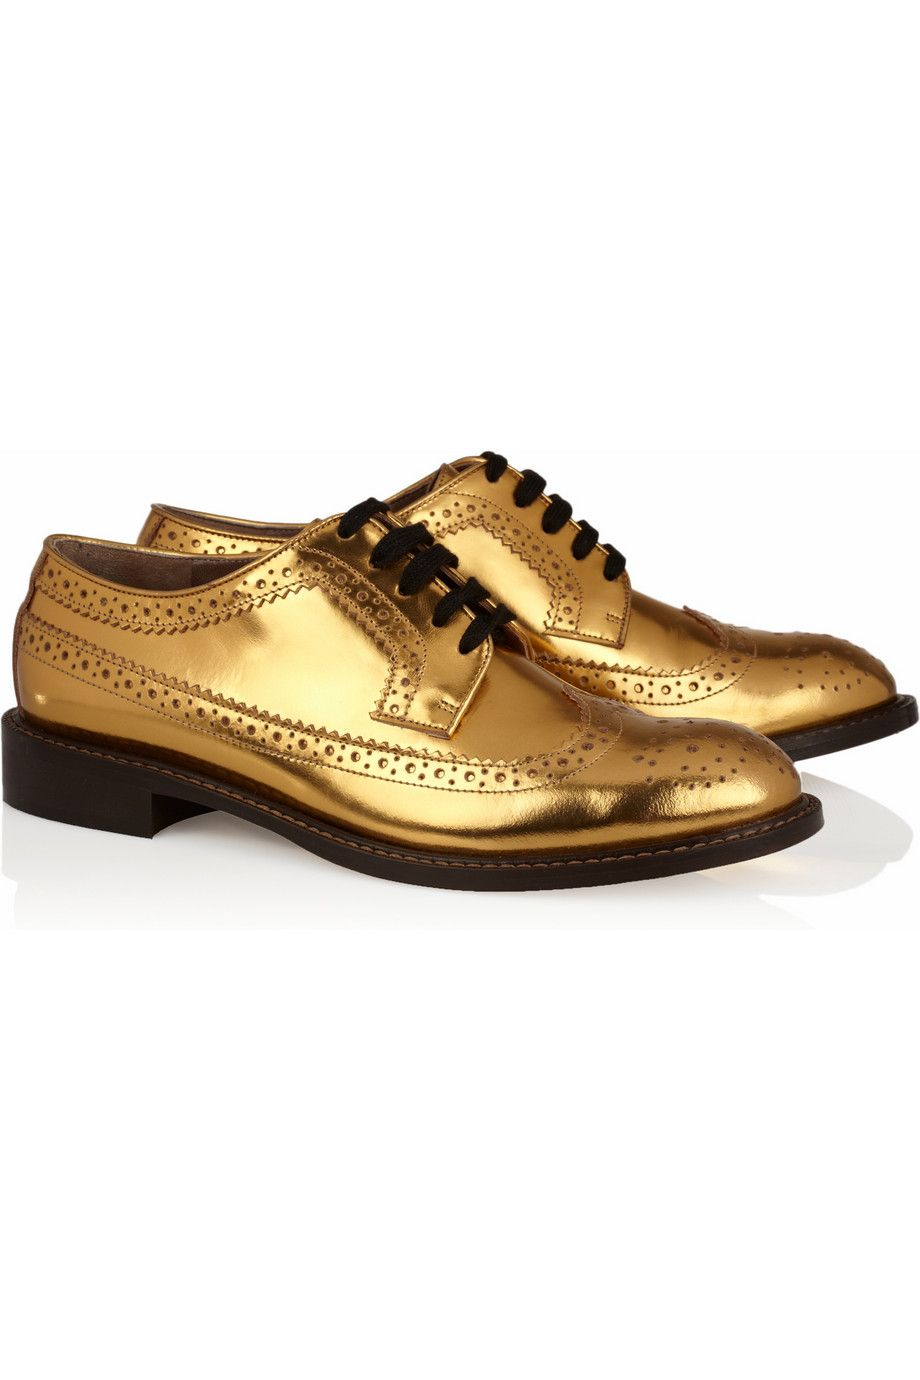 sale pictures newest for sale Marni Leather Brogue Oxfords discount 2015 best place zyybyTyY